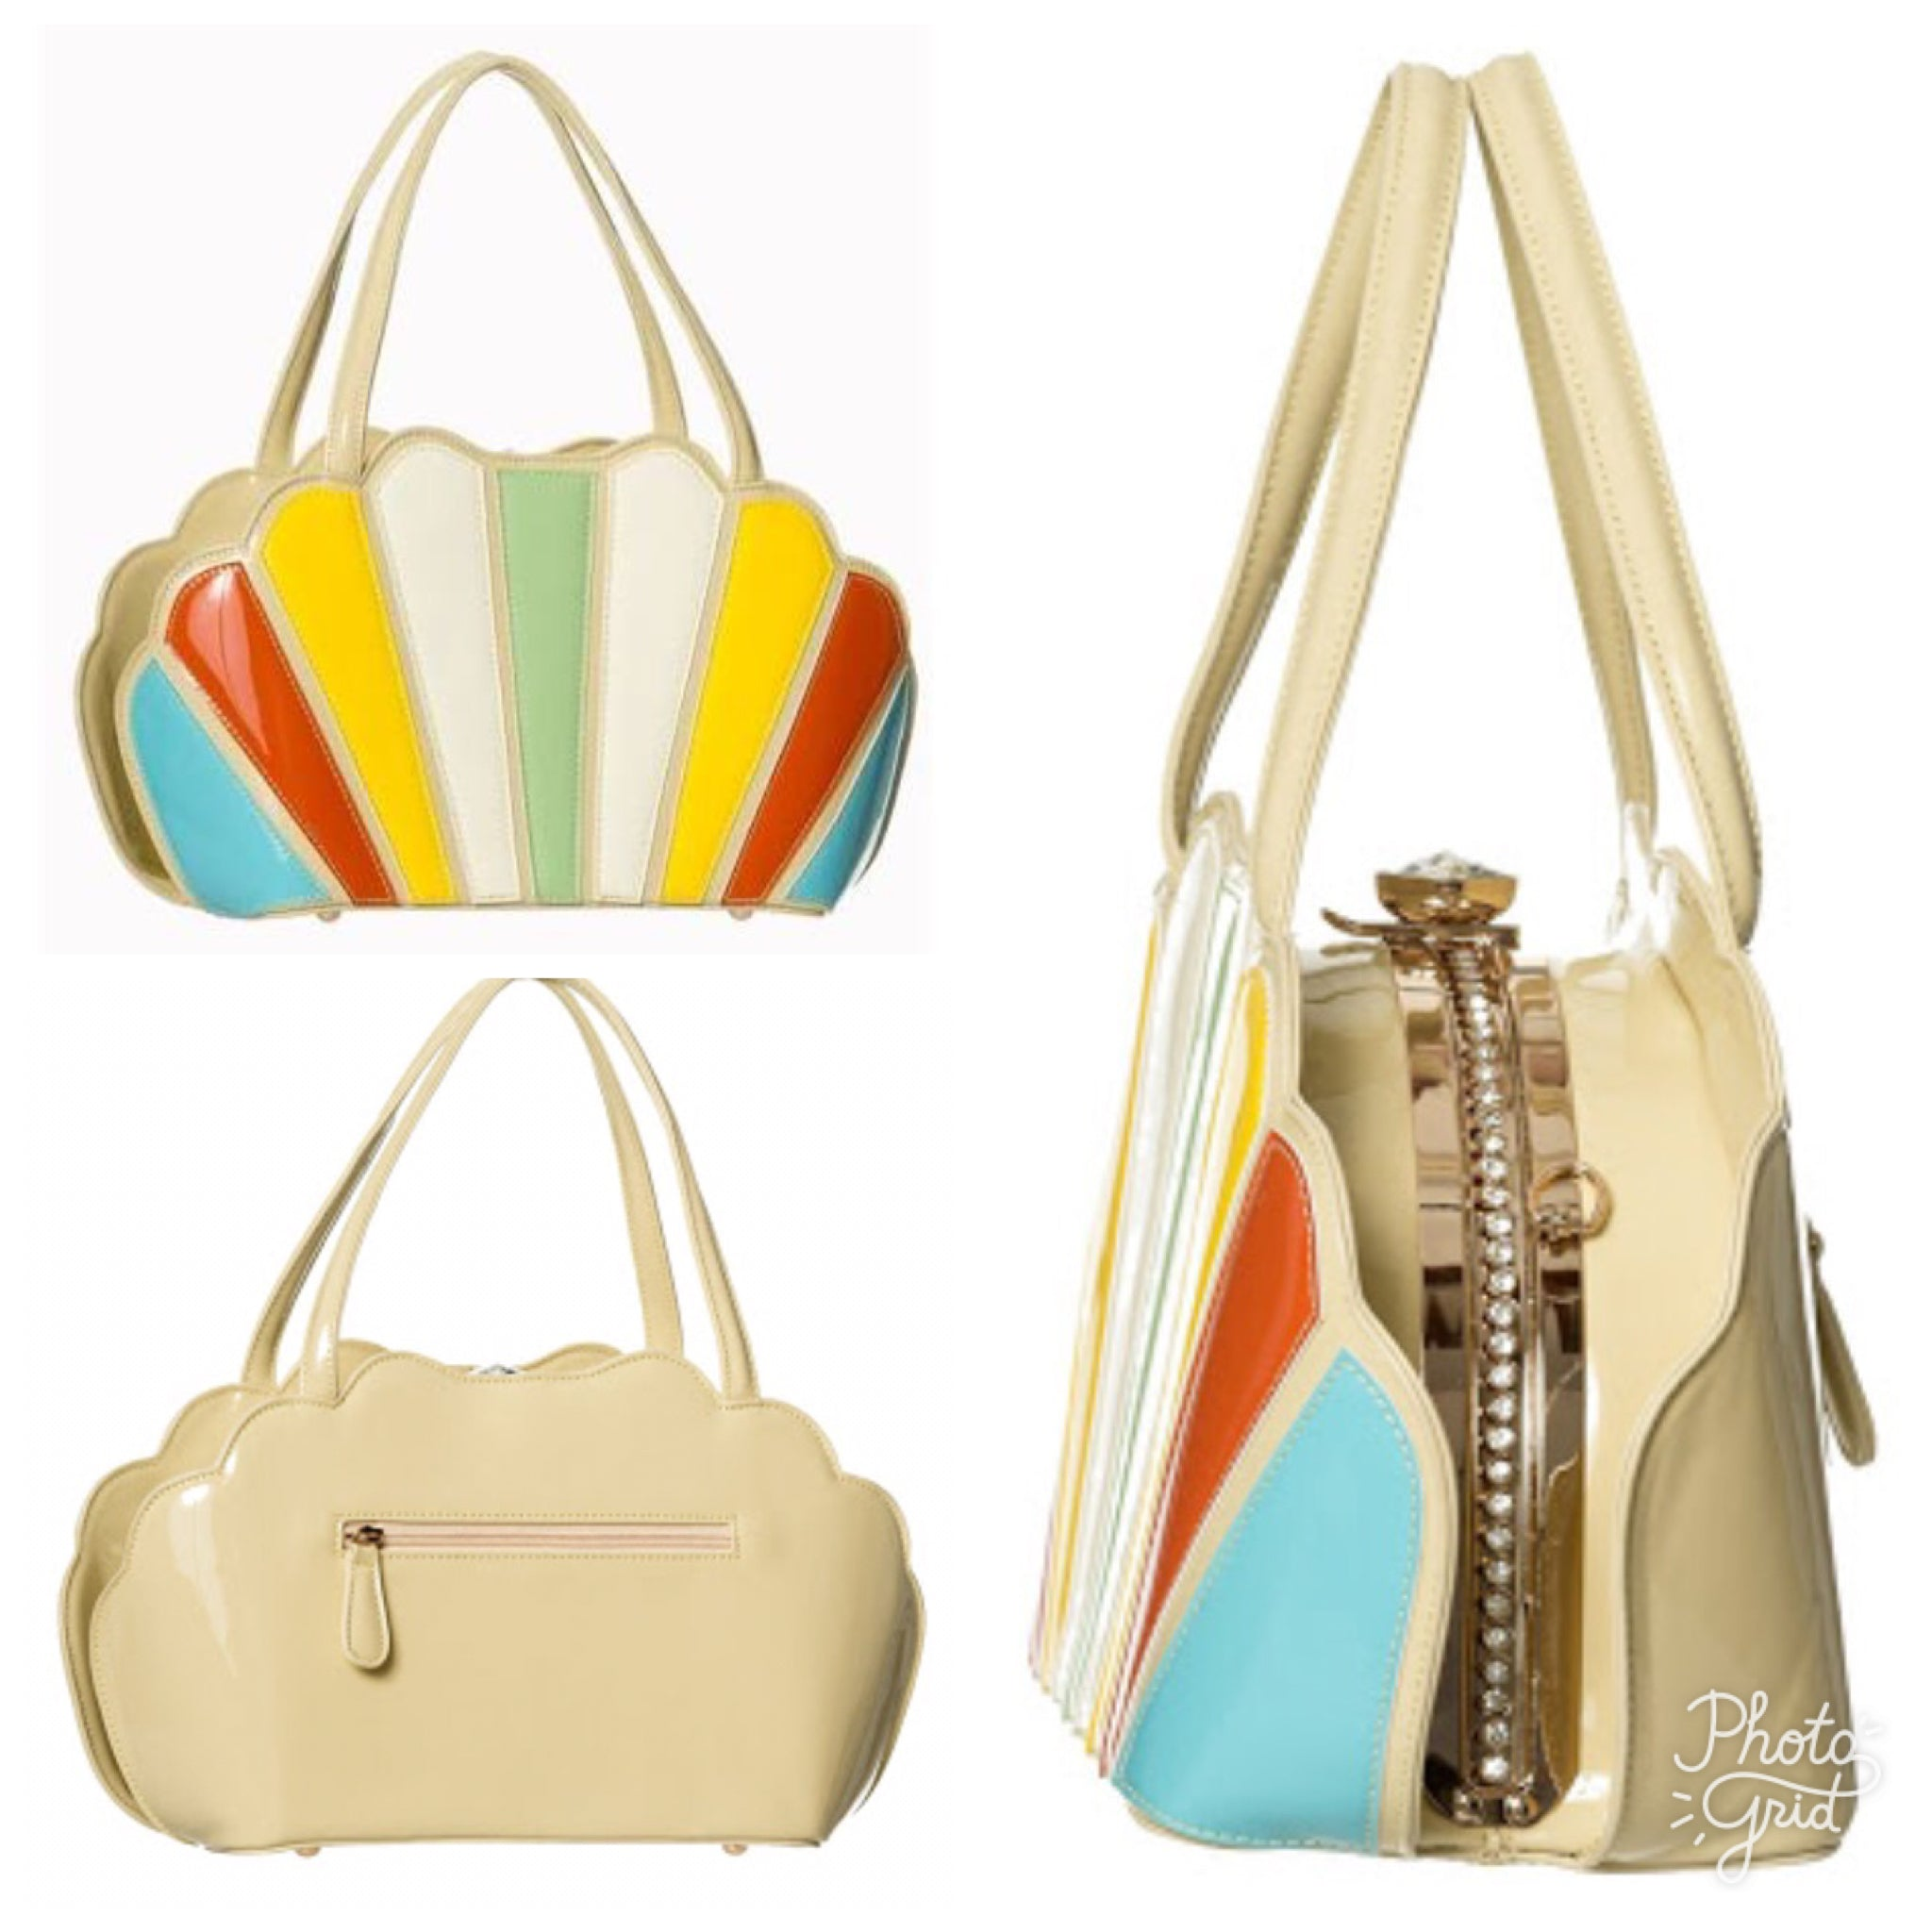 Banned apparel beige and rainbow shell shaped handbag